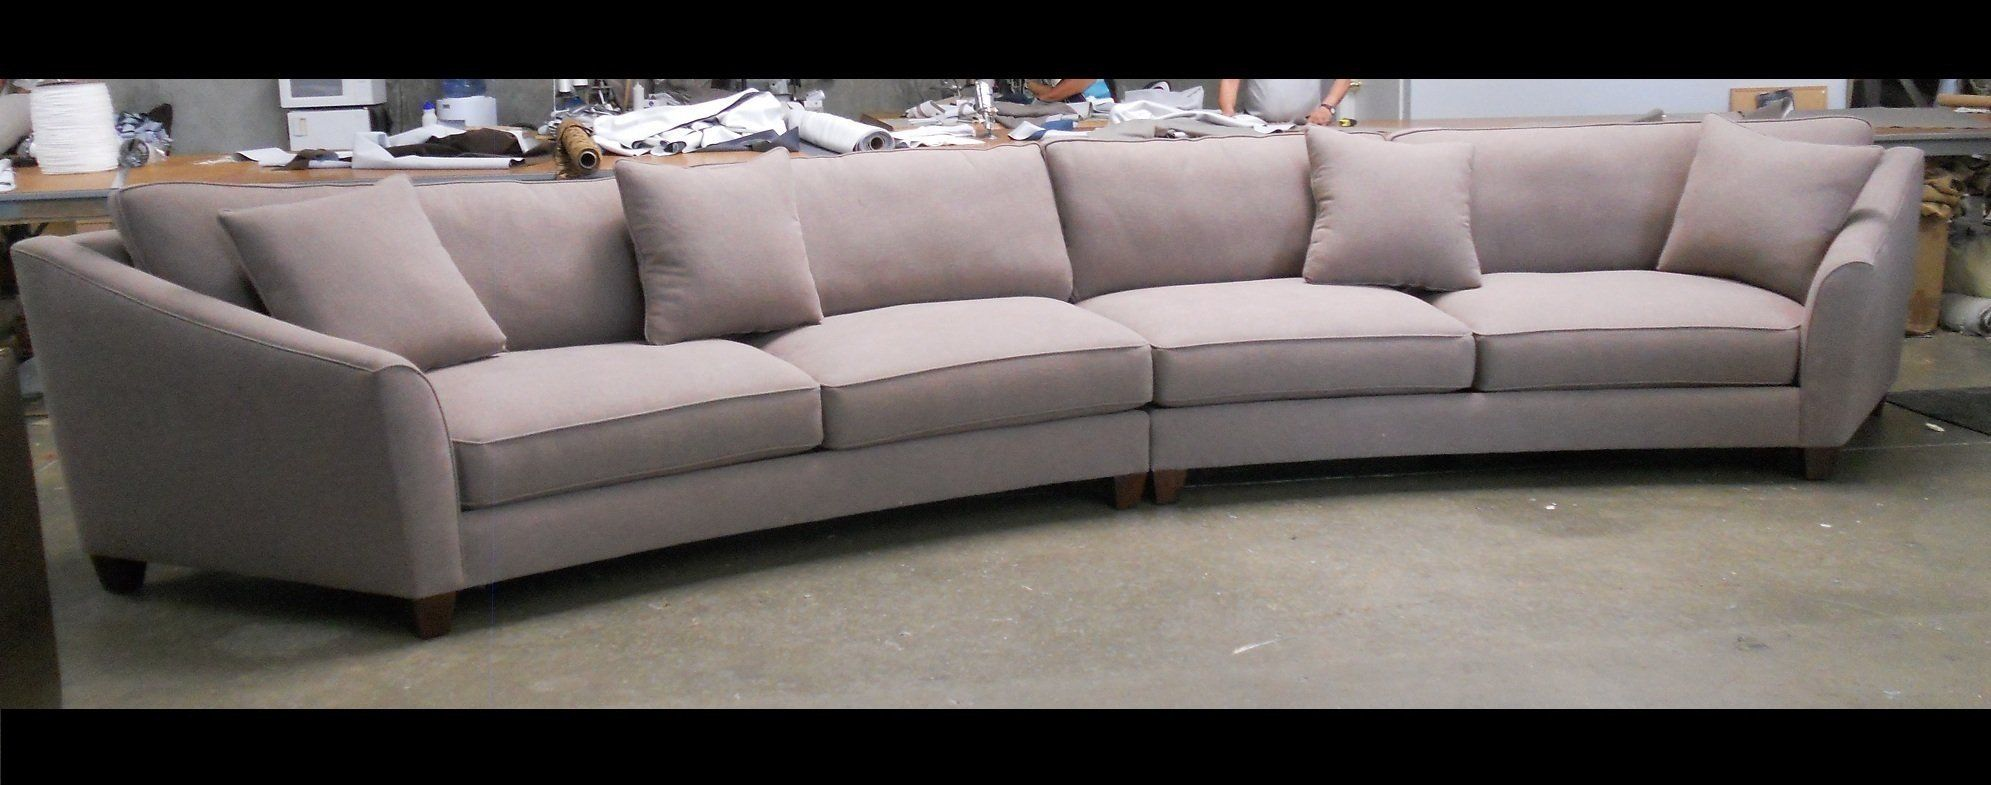 Curved Sectional Sofa Set - Rich Comfortable Upholstered ...